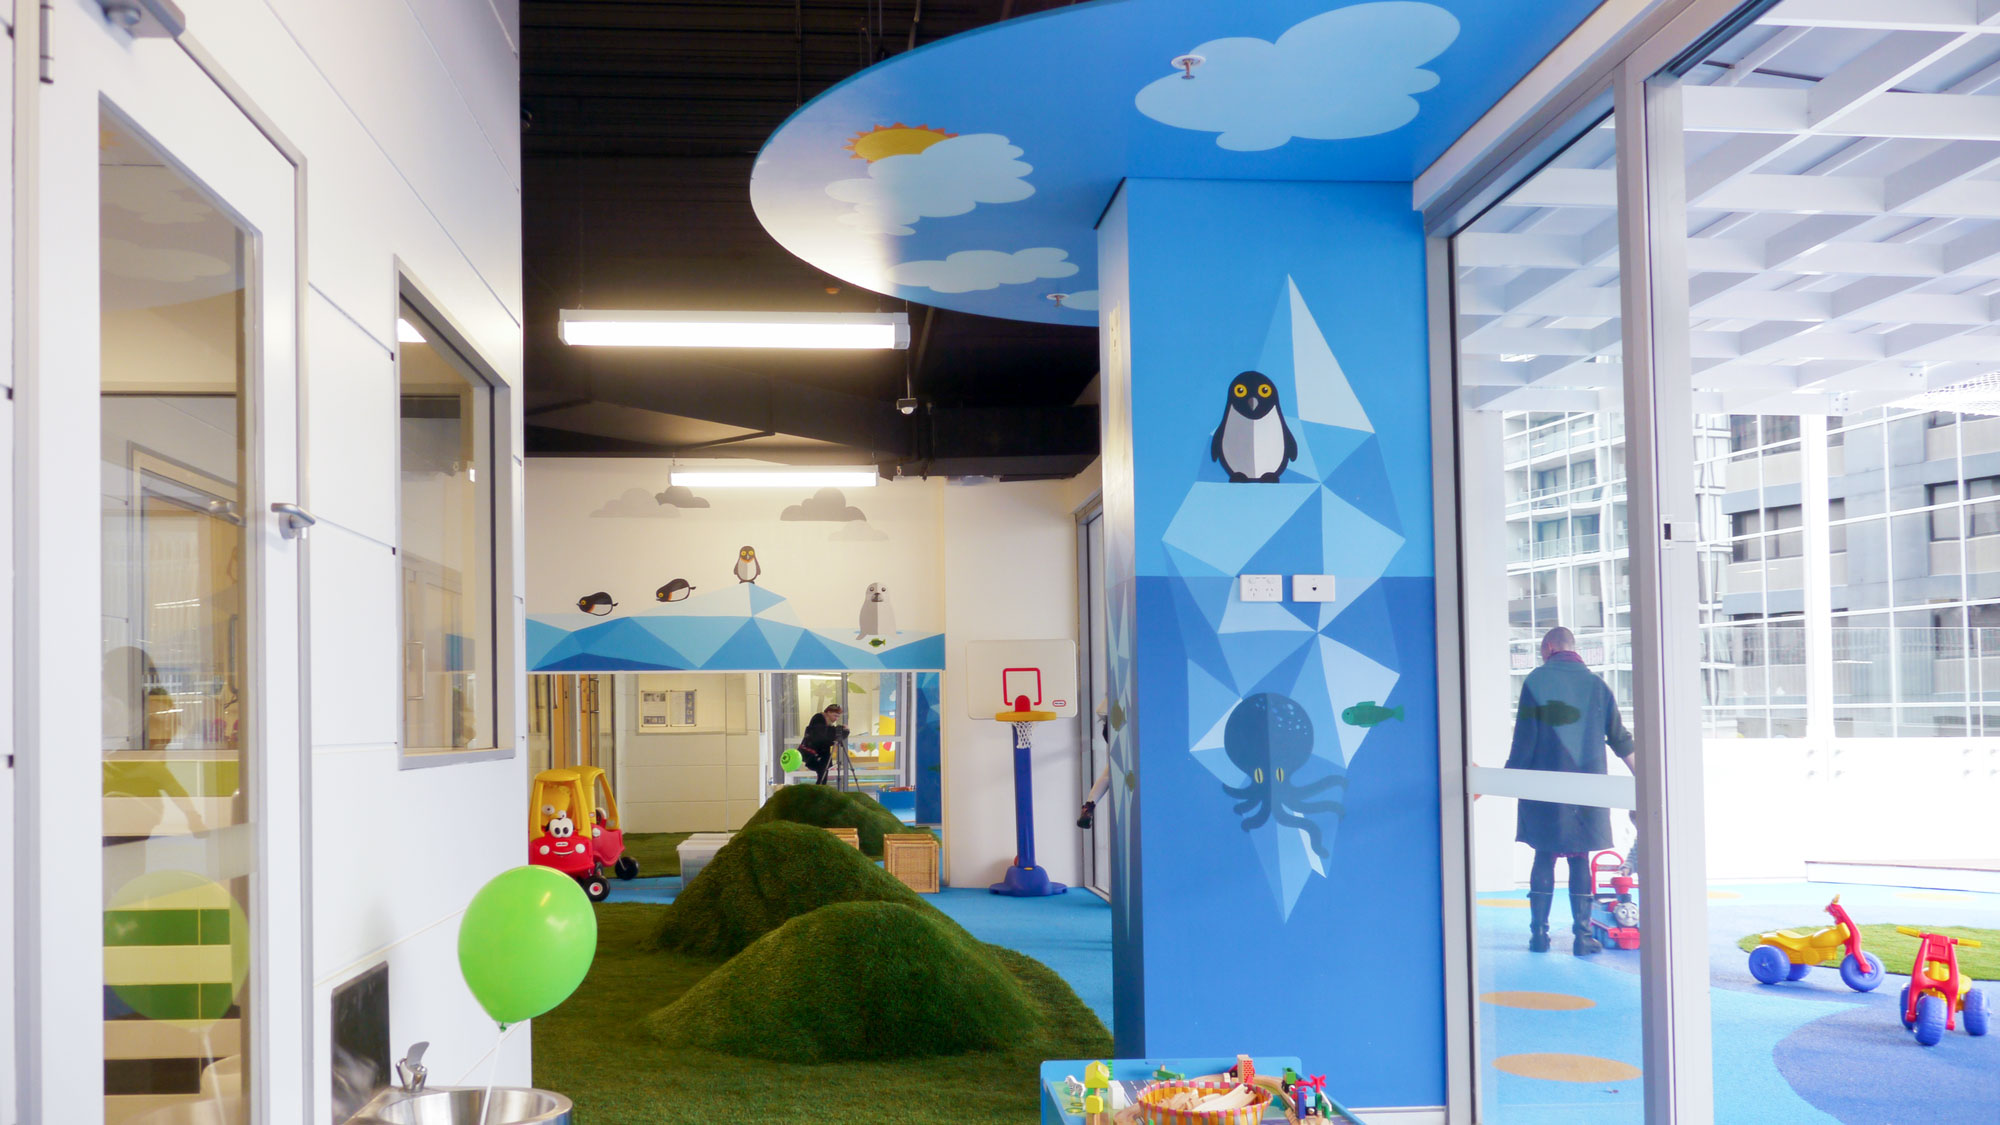 the-art-of-wall-child-care-center-mural-arctic-room1